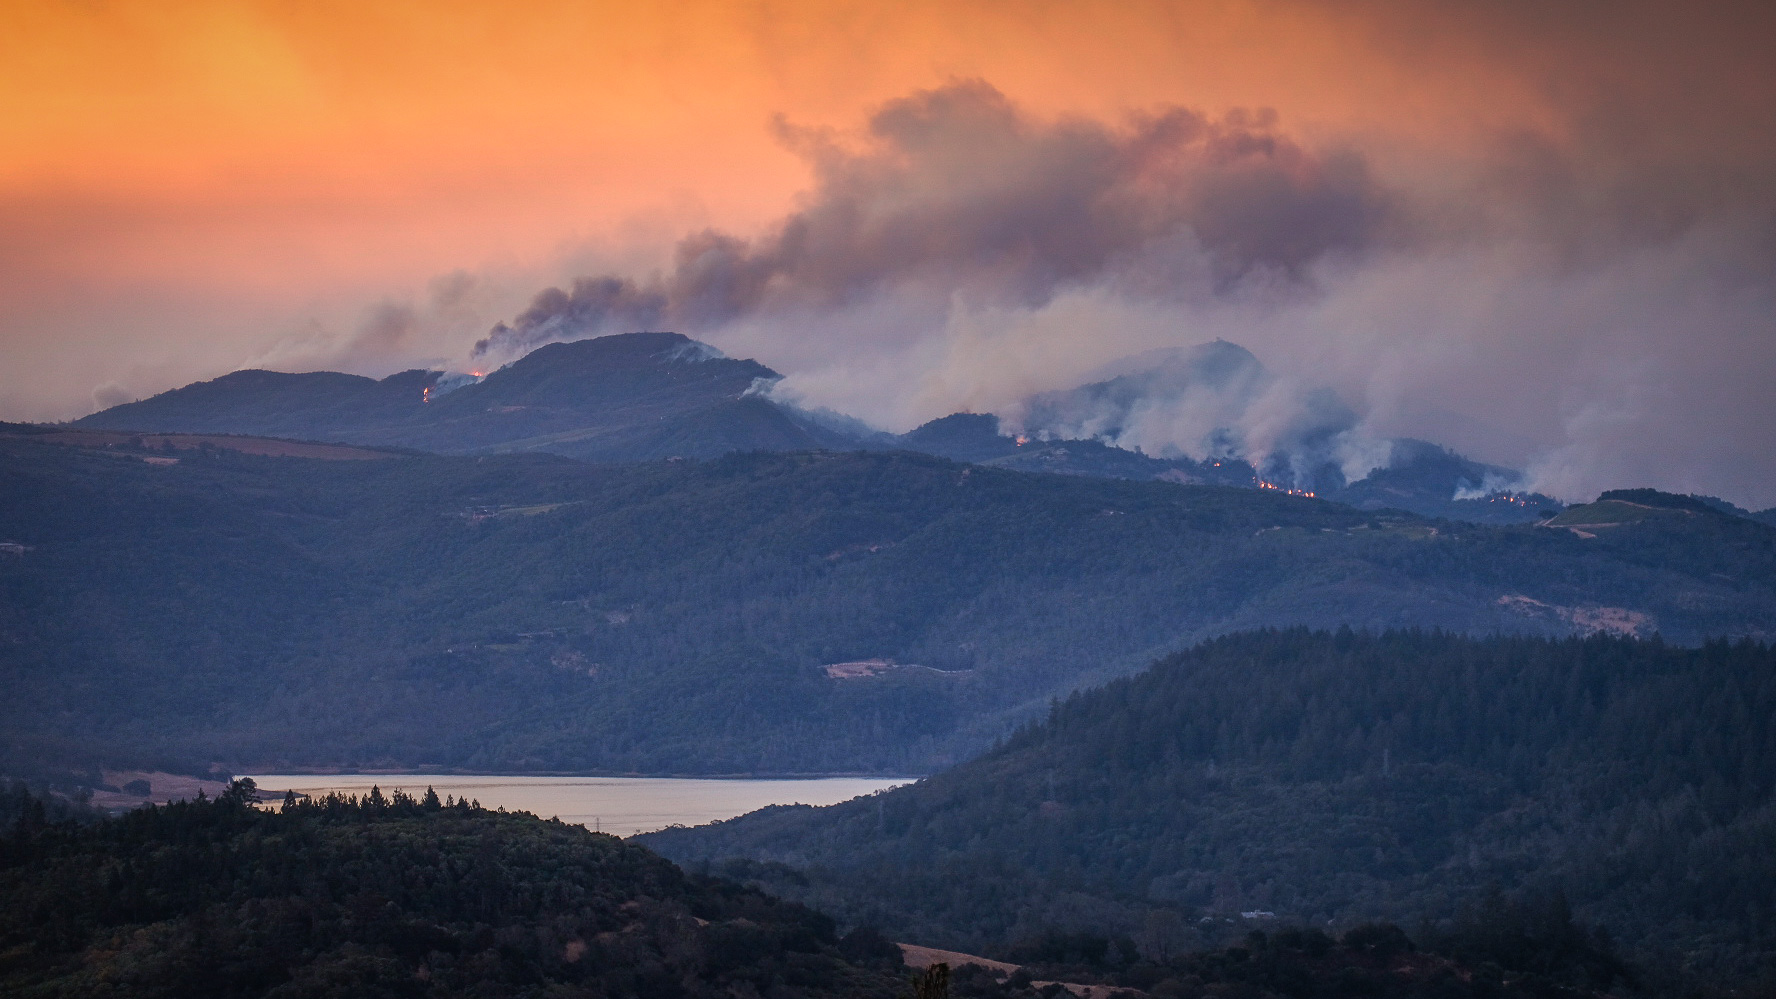 Napa California Fires